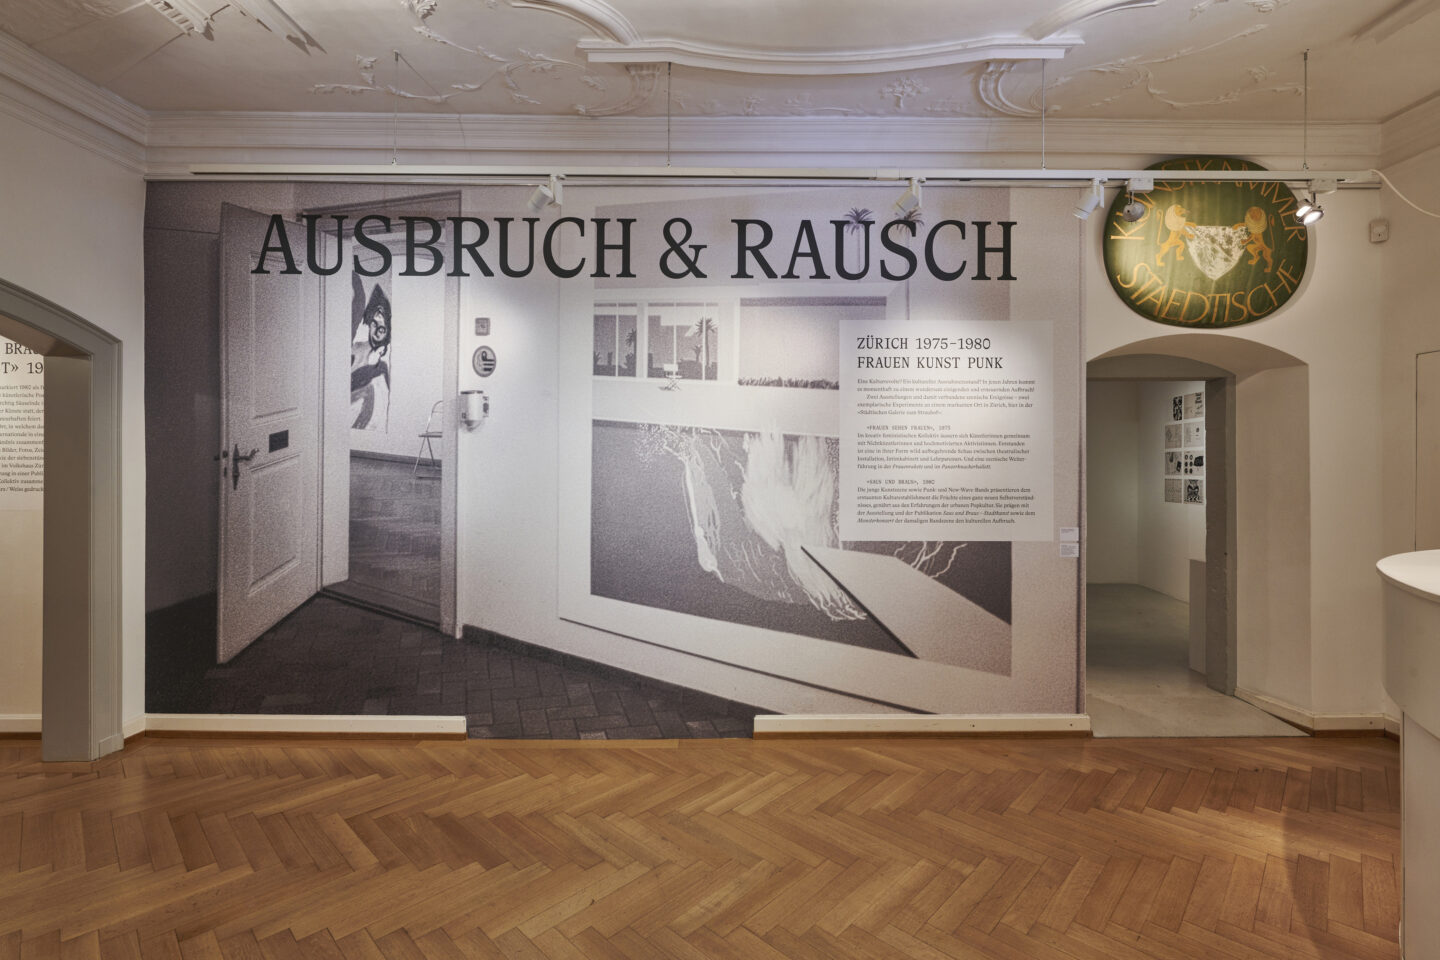 Exhibition View Groupshow «Ausbruch & Rausch, Zurich 1975-1980, Women Art Punk» at Strauhof, Zurich, 2020 / Photo: Zeljko Gataric